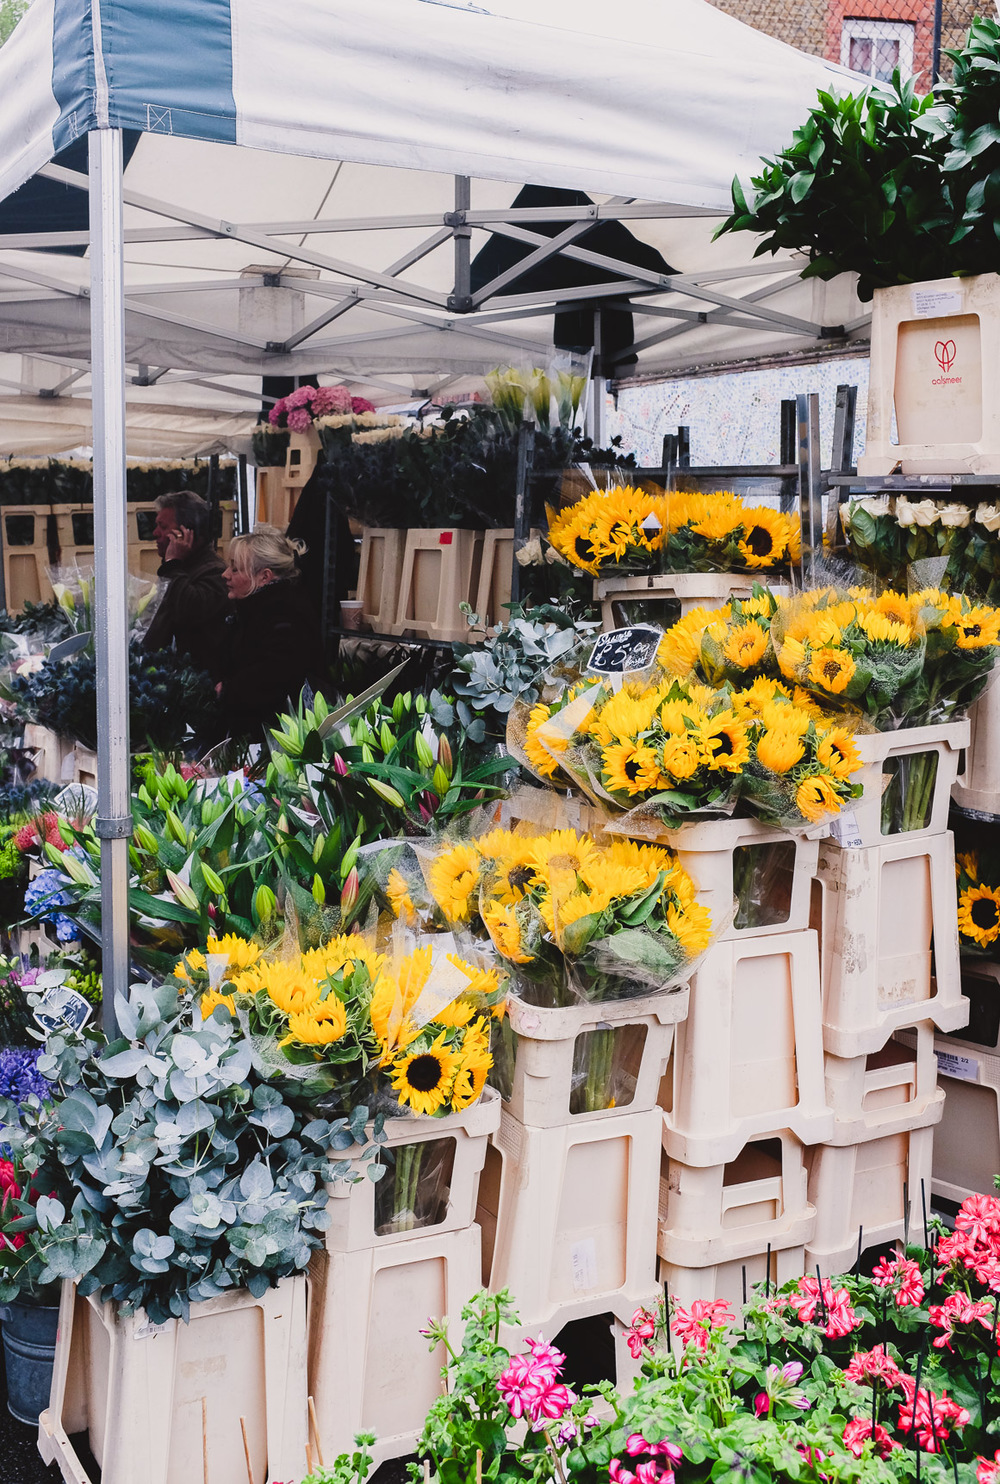 columbia road flower market london sunflowers iamsuanlee